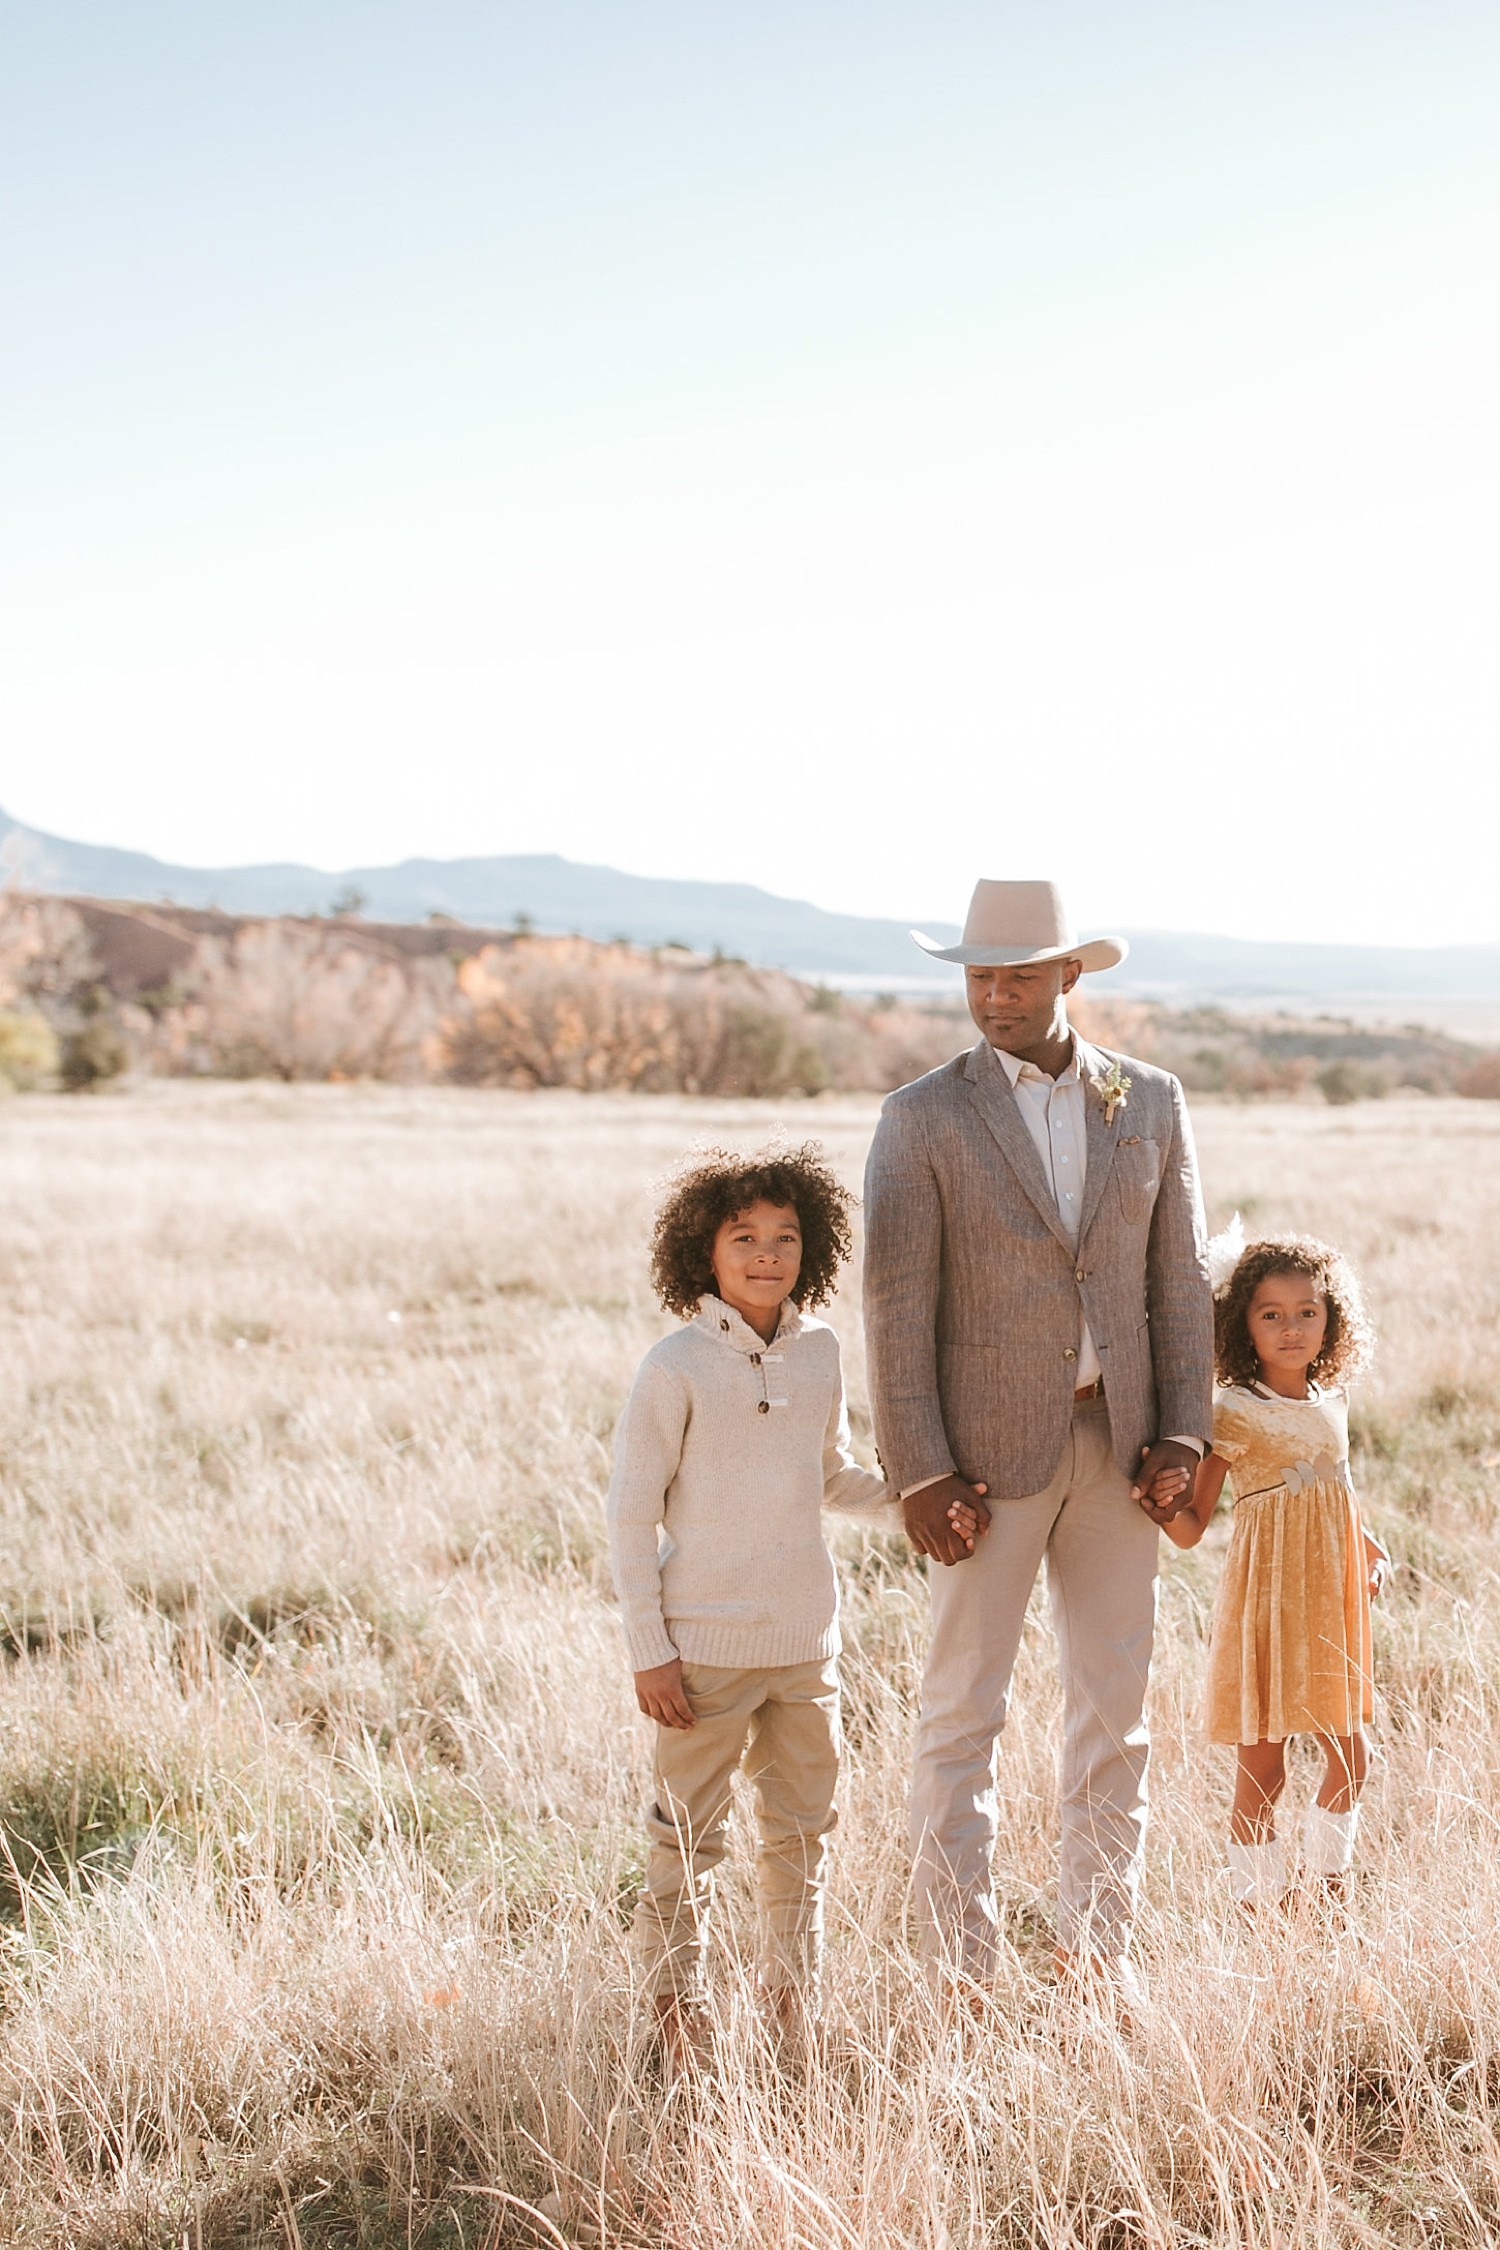 Alicia+lucia+photography+-+albuquerque+wedding+photographer+-+santa+fe+wedding+photography+-+new+mexico+wedding+photographer+-+new+mexico+ghost+ranch+wedding+-+styled+wedding+shoot_0016.jpg